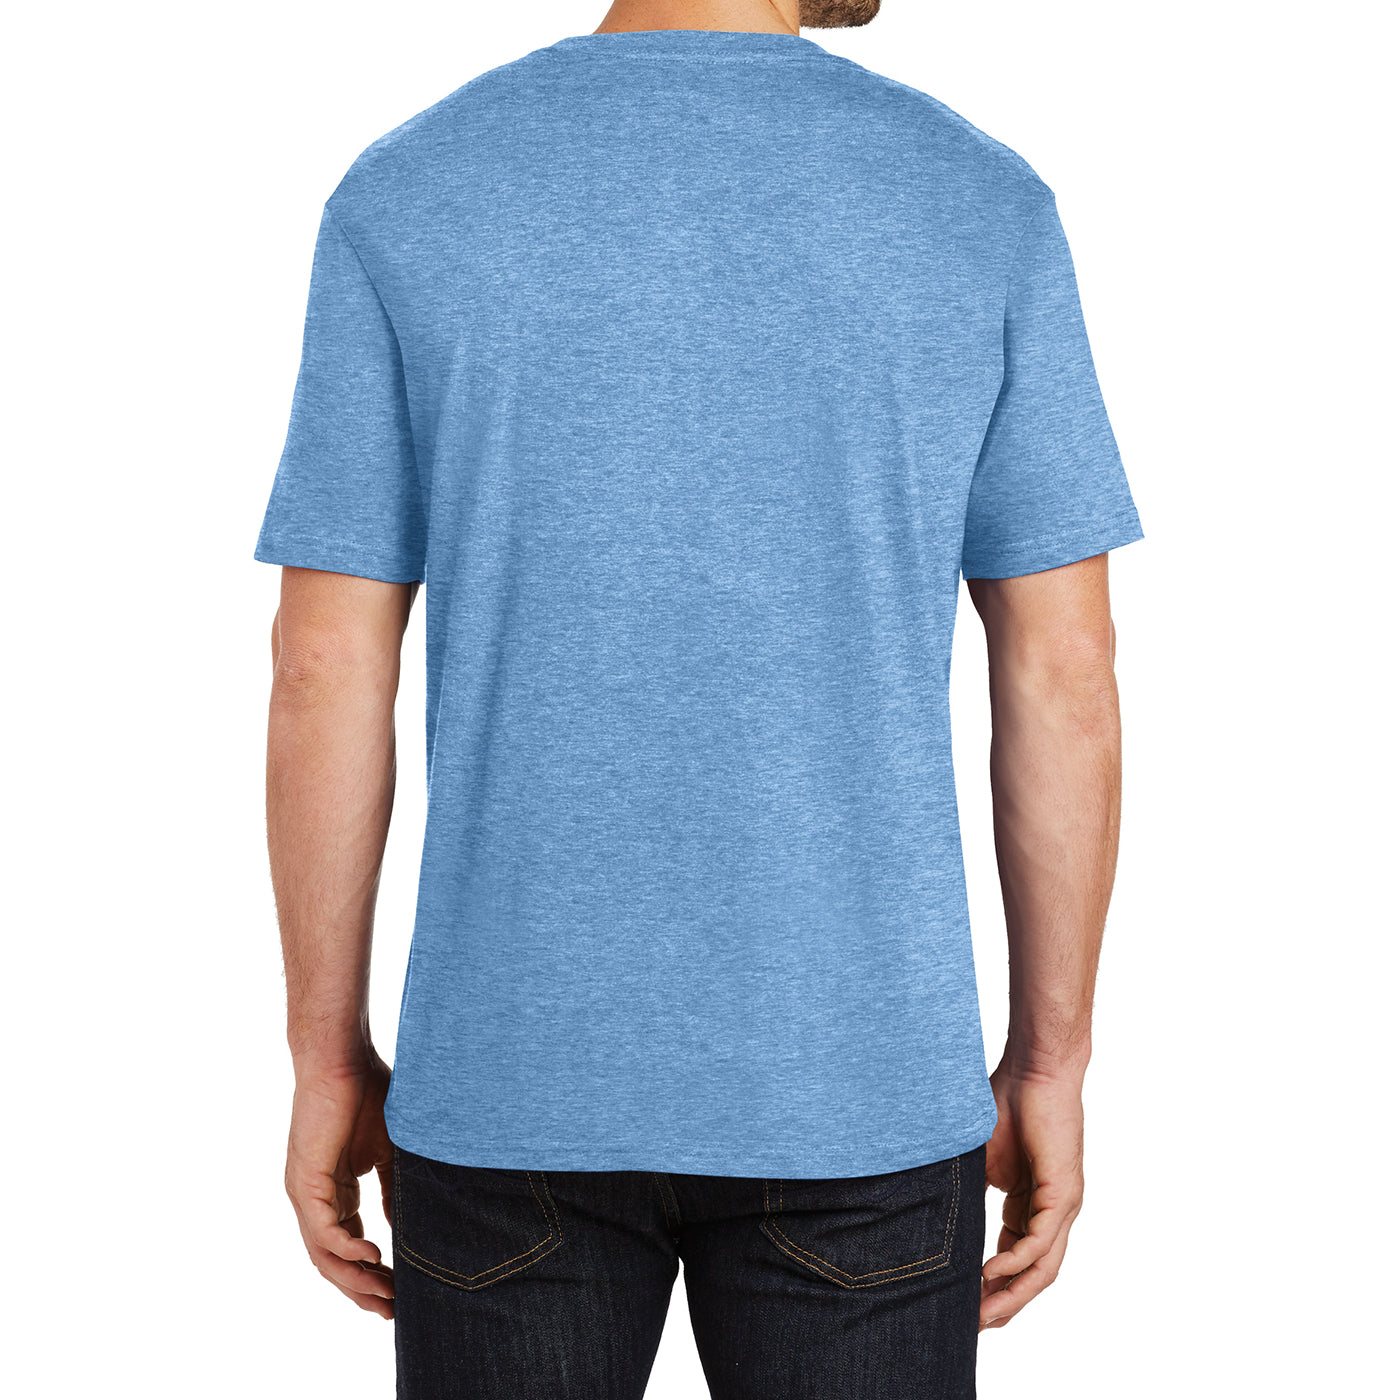 Mens Perfect Weight Crew Tee - Clean Denim - Back